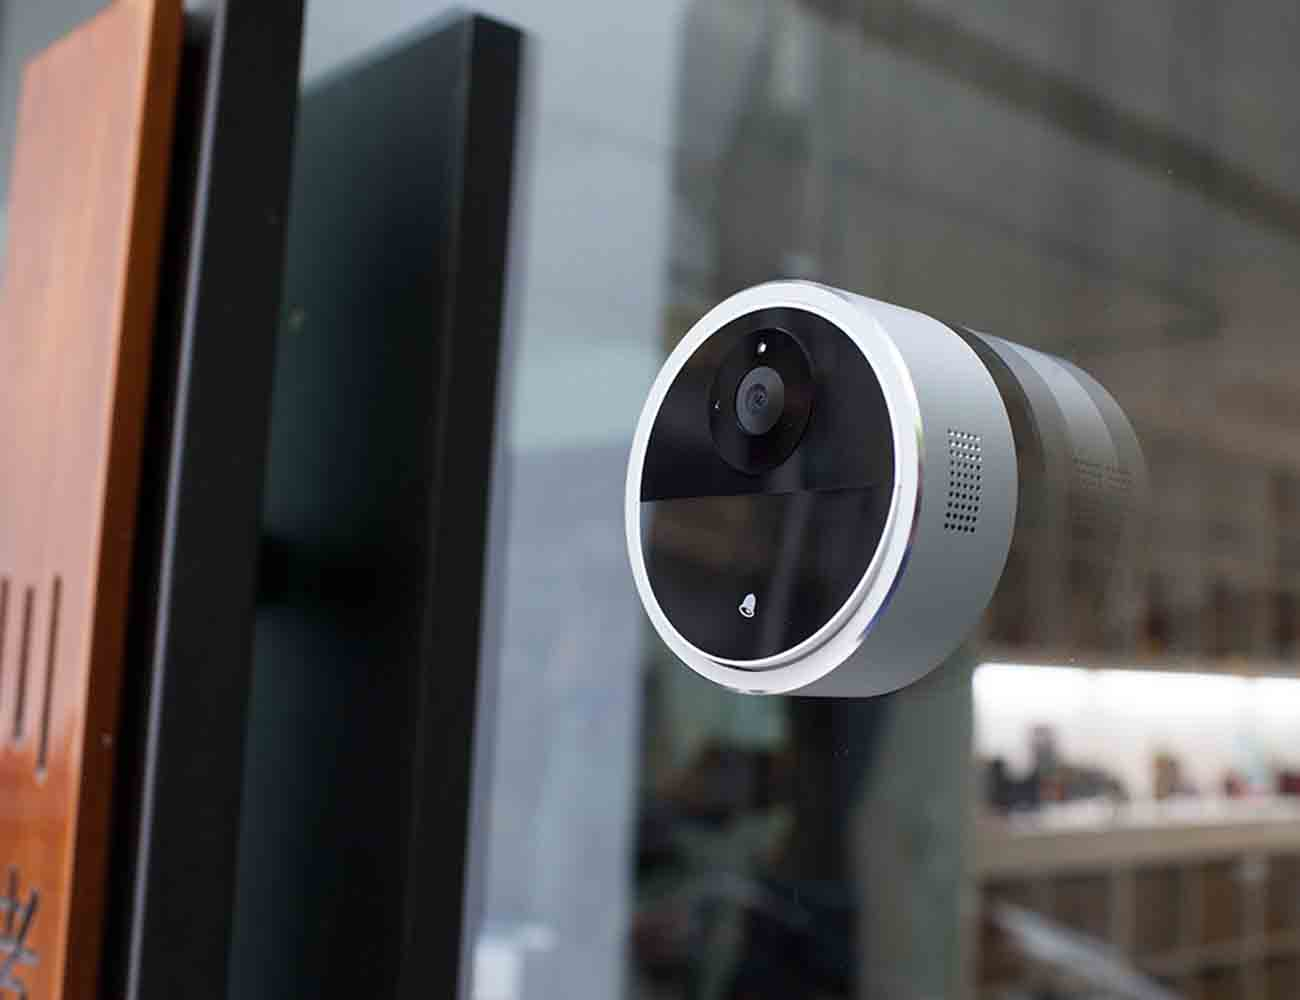 DefenDoor – A Home Security System That Syncs With Your Phone